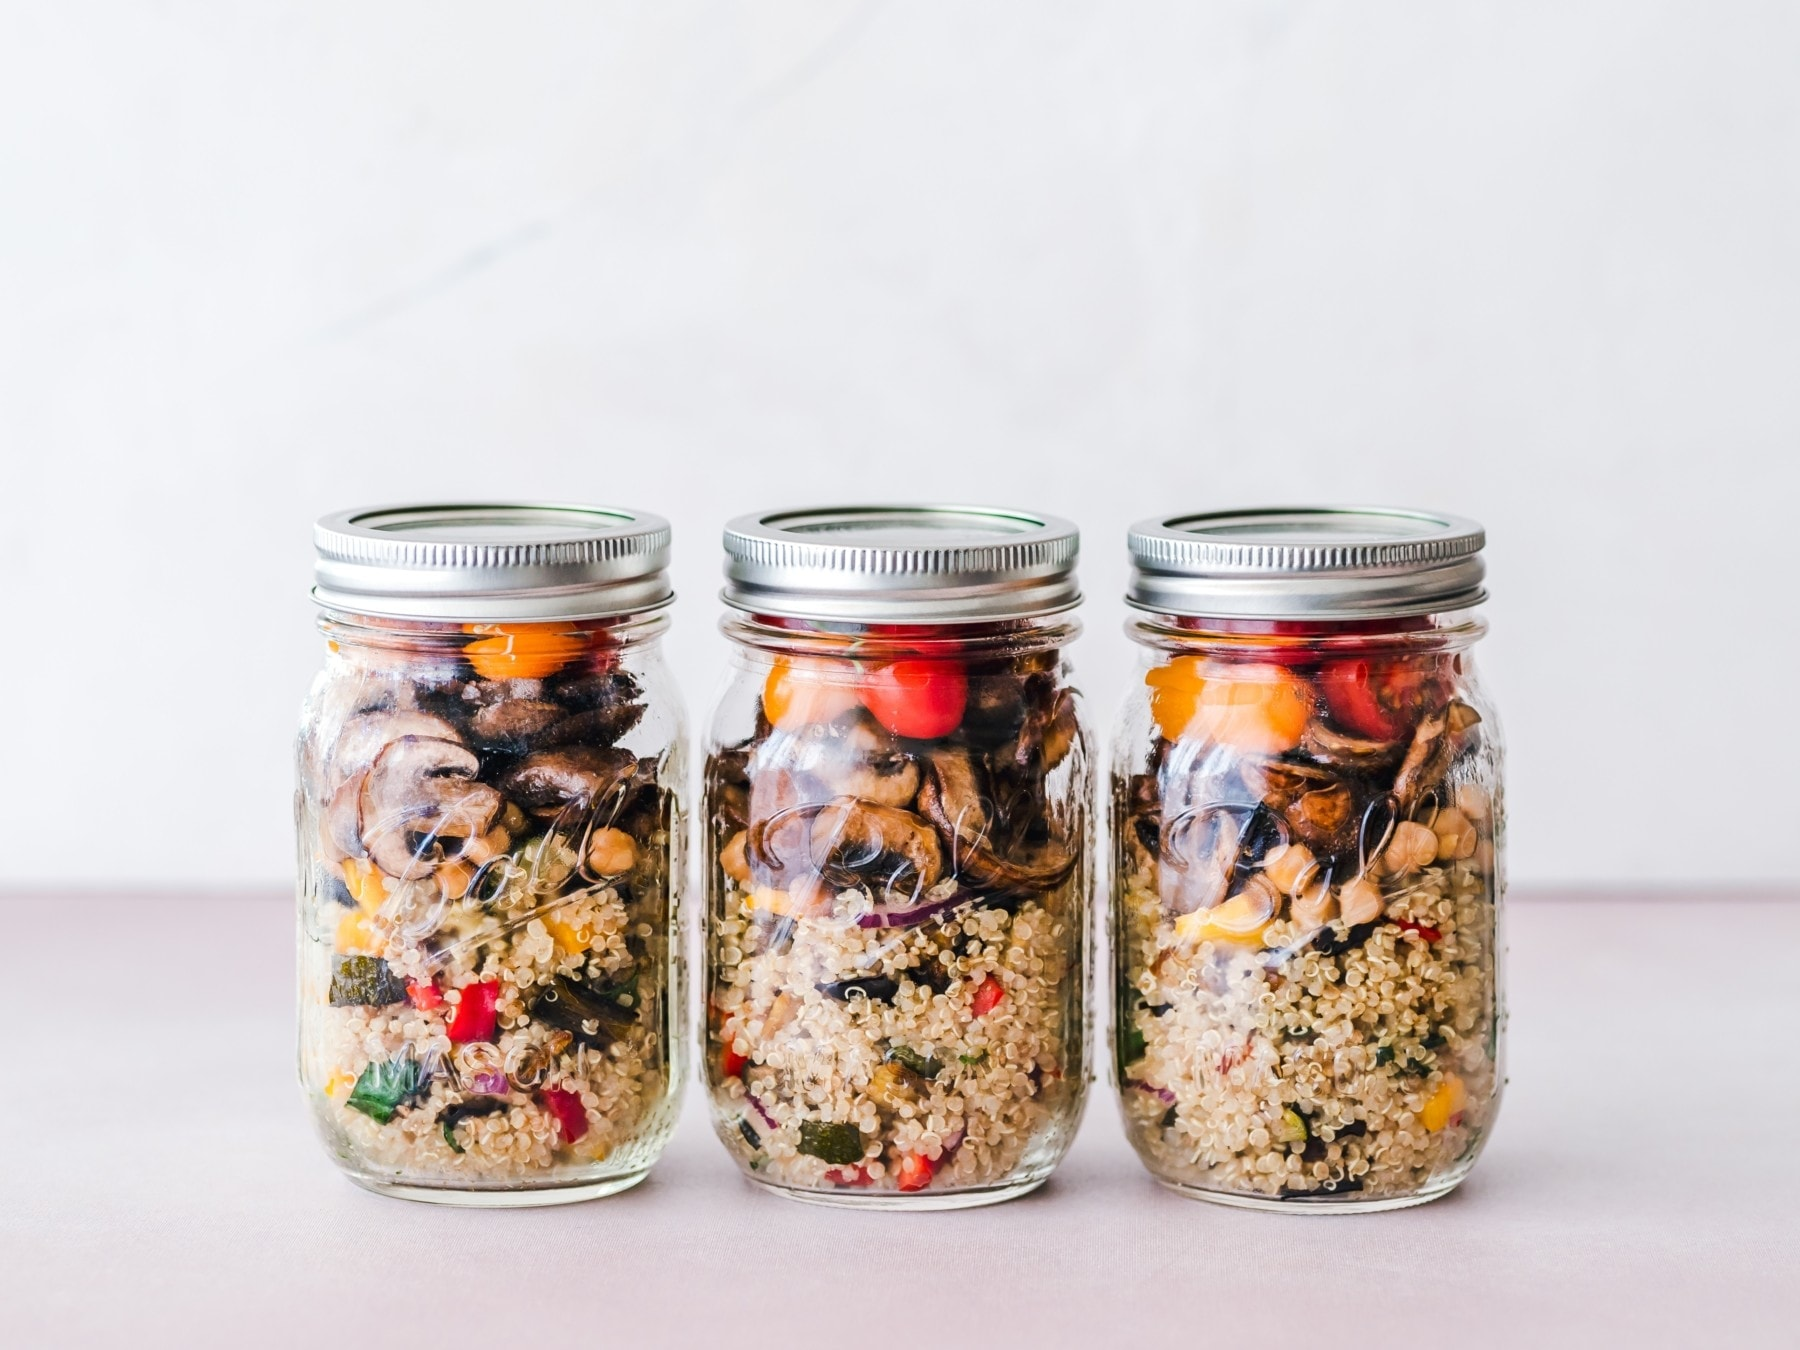 prepared food in jars